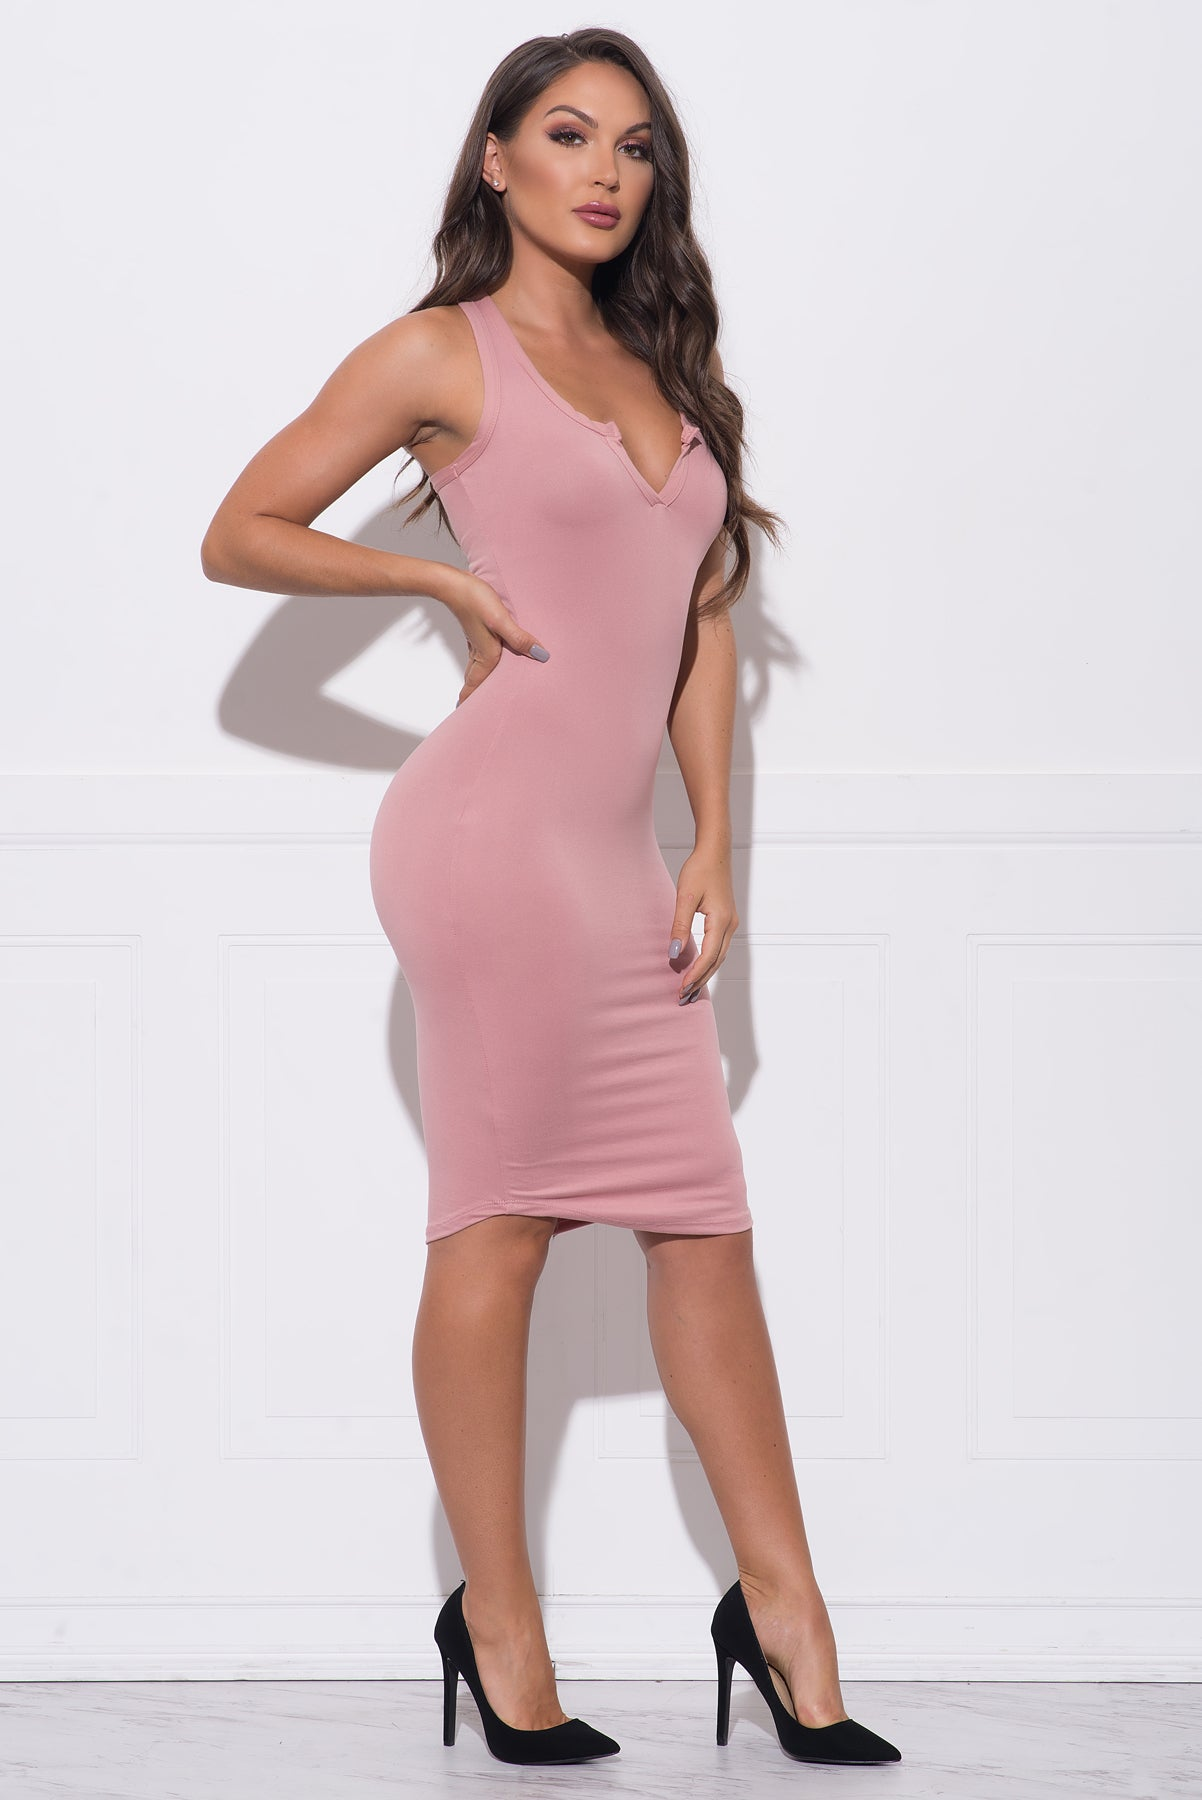 Skylin Dress - Dusty Pink